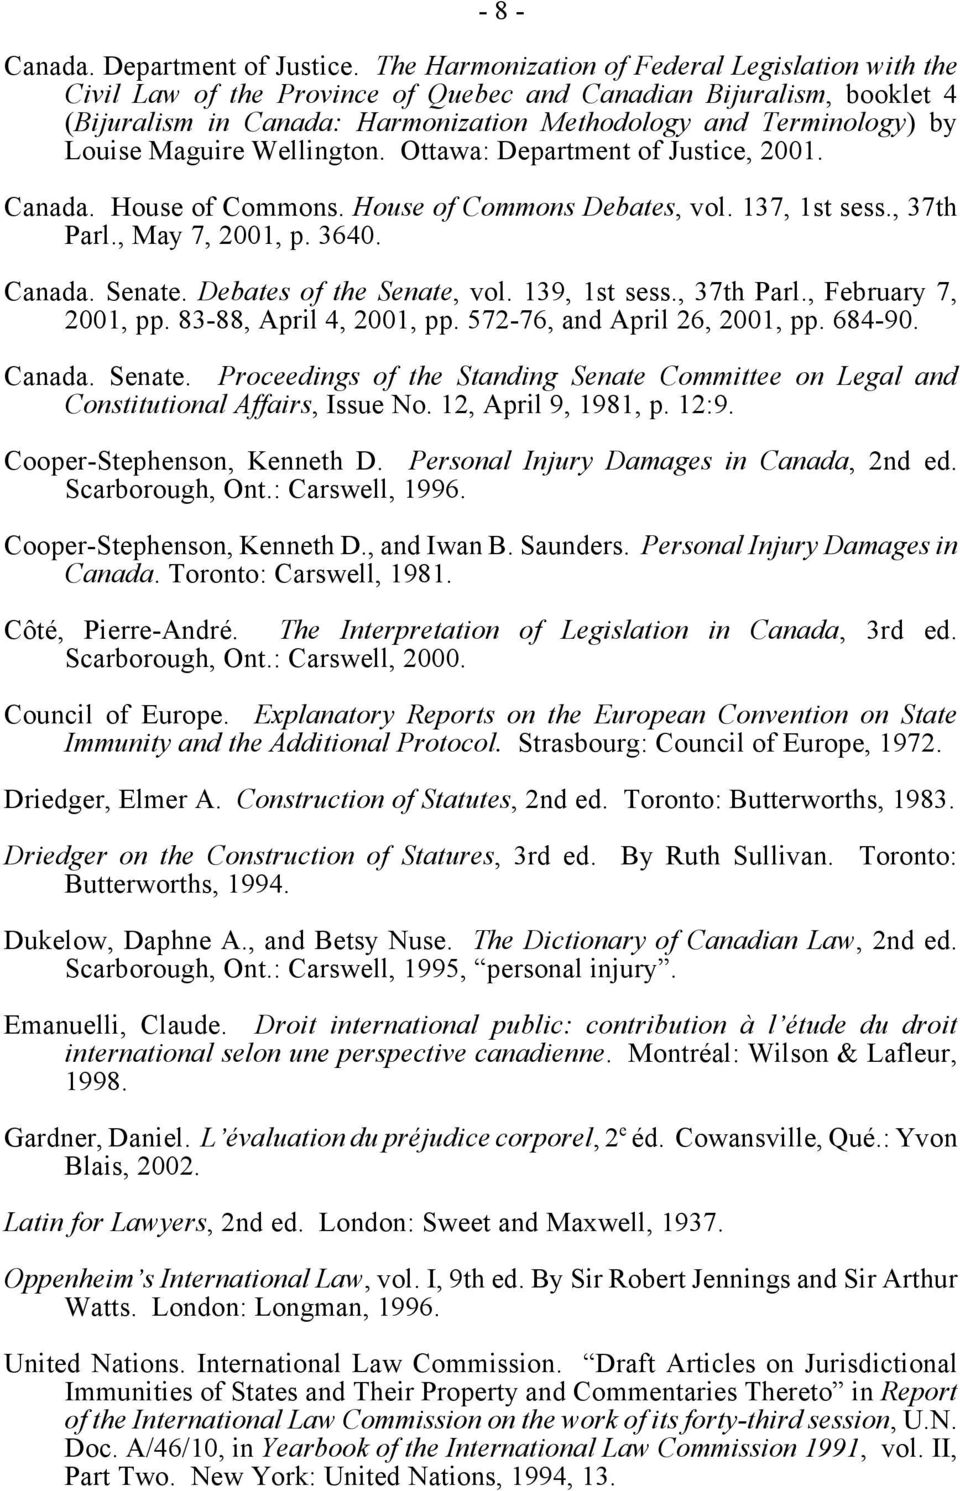 Maguire Wellington. Ottawa: Department of Justice, 2001. Canada. House of Commons. House of Commons Debates, vol. 137, 1st sess., 37th Parl., May 7, 2001, p. 3640. Canada. Senate.